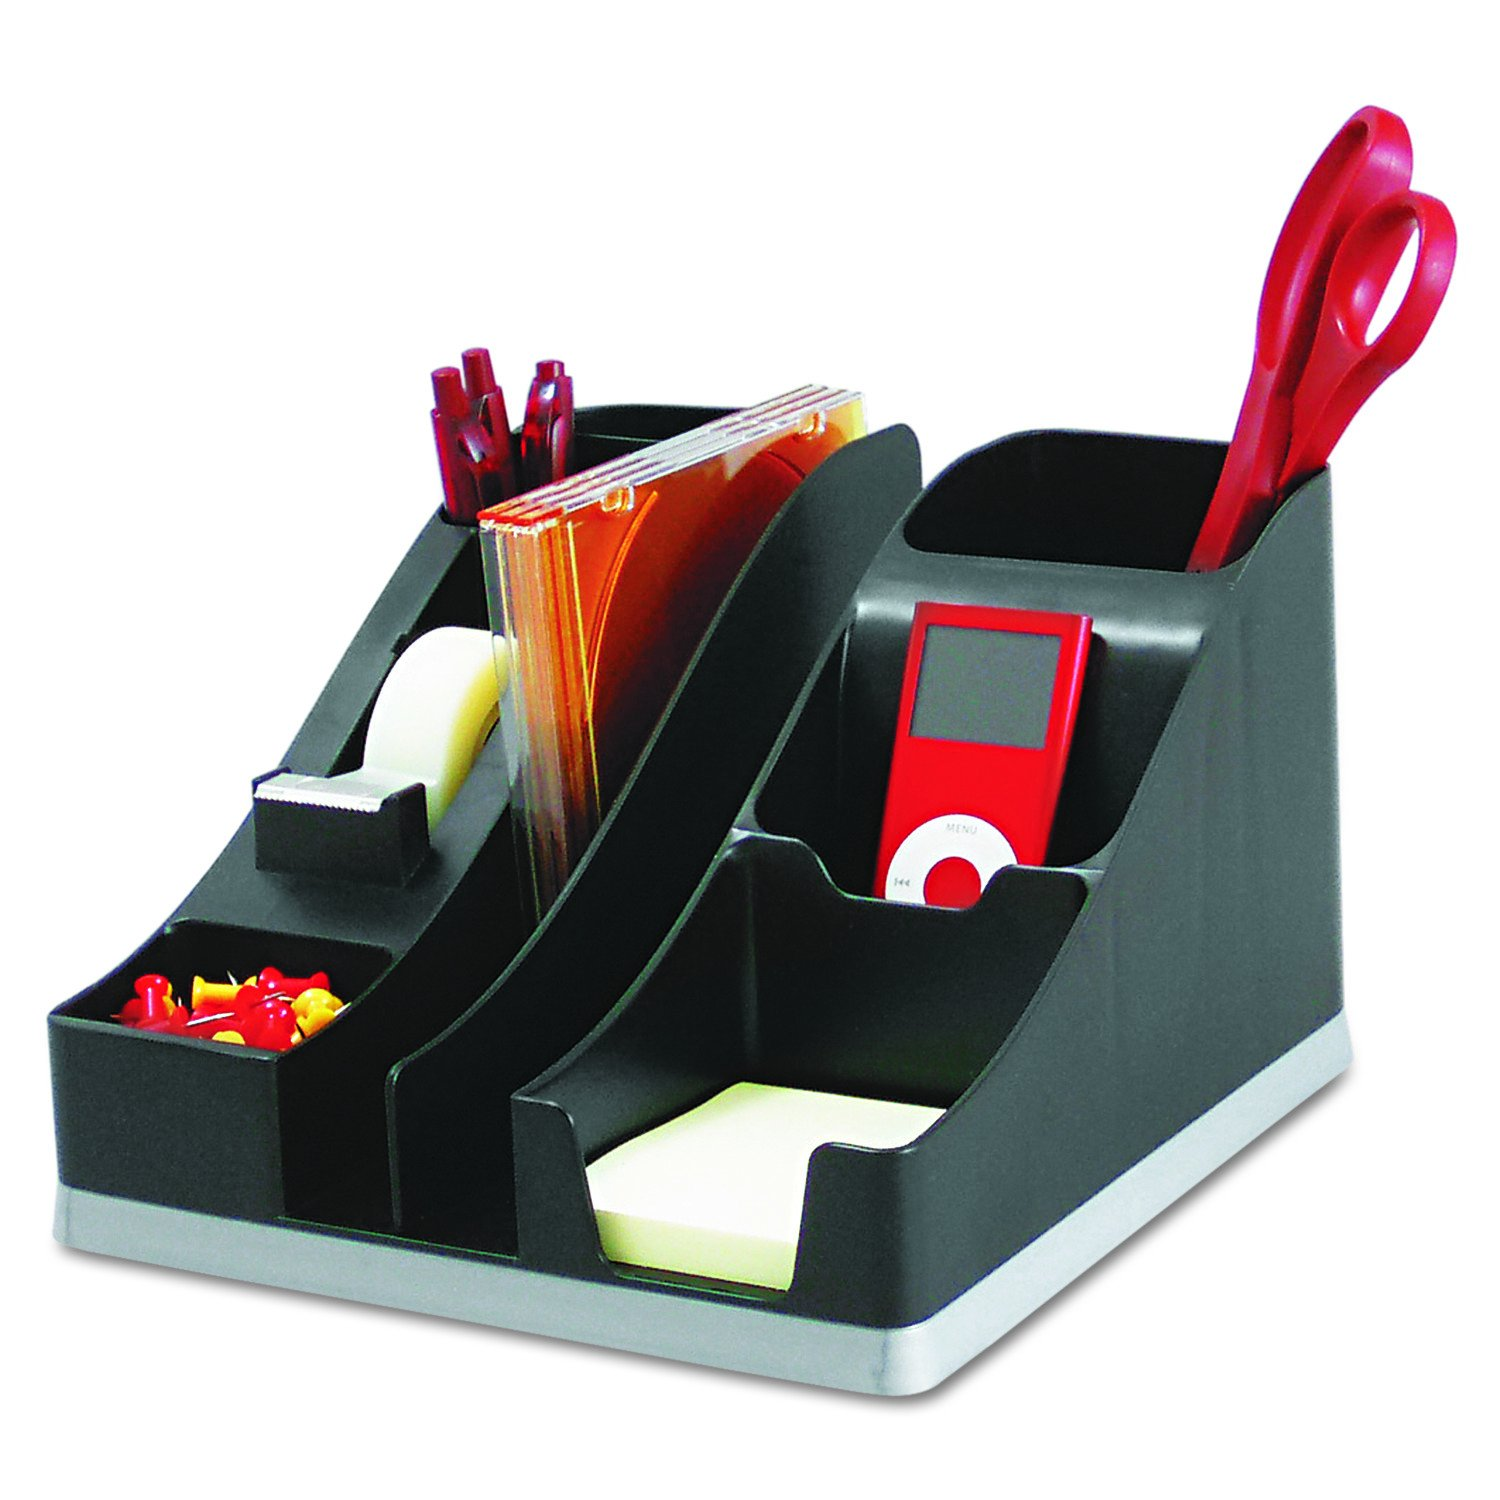 Deflecto Silhouettes All-In-One Desk Caddy, Office Supplies Caddy, Black With Silver Base, 8-1/8''W x 5-3/16''H x 9-1/8''D (35172)